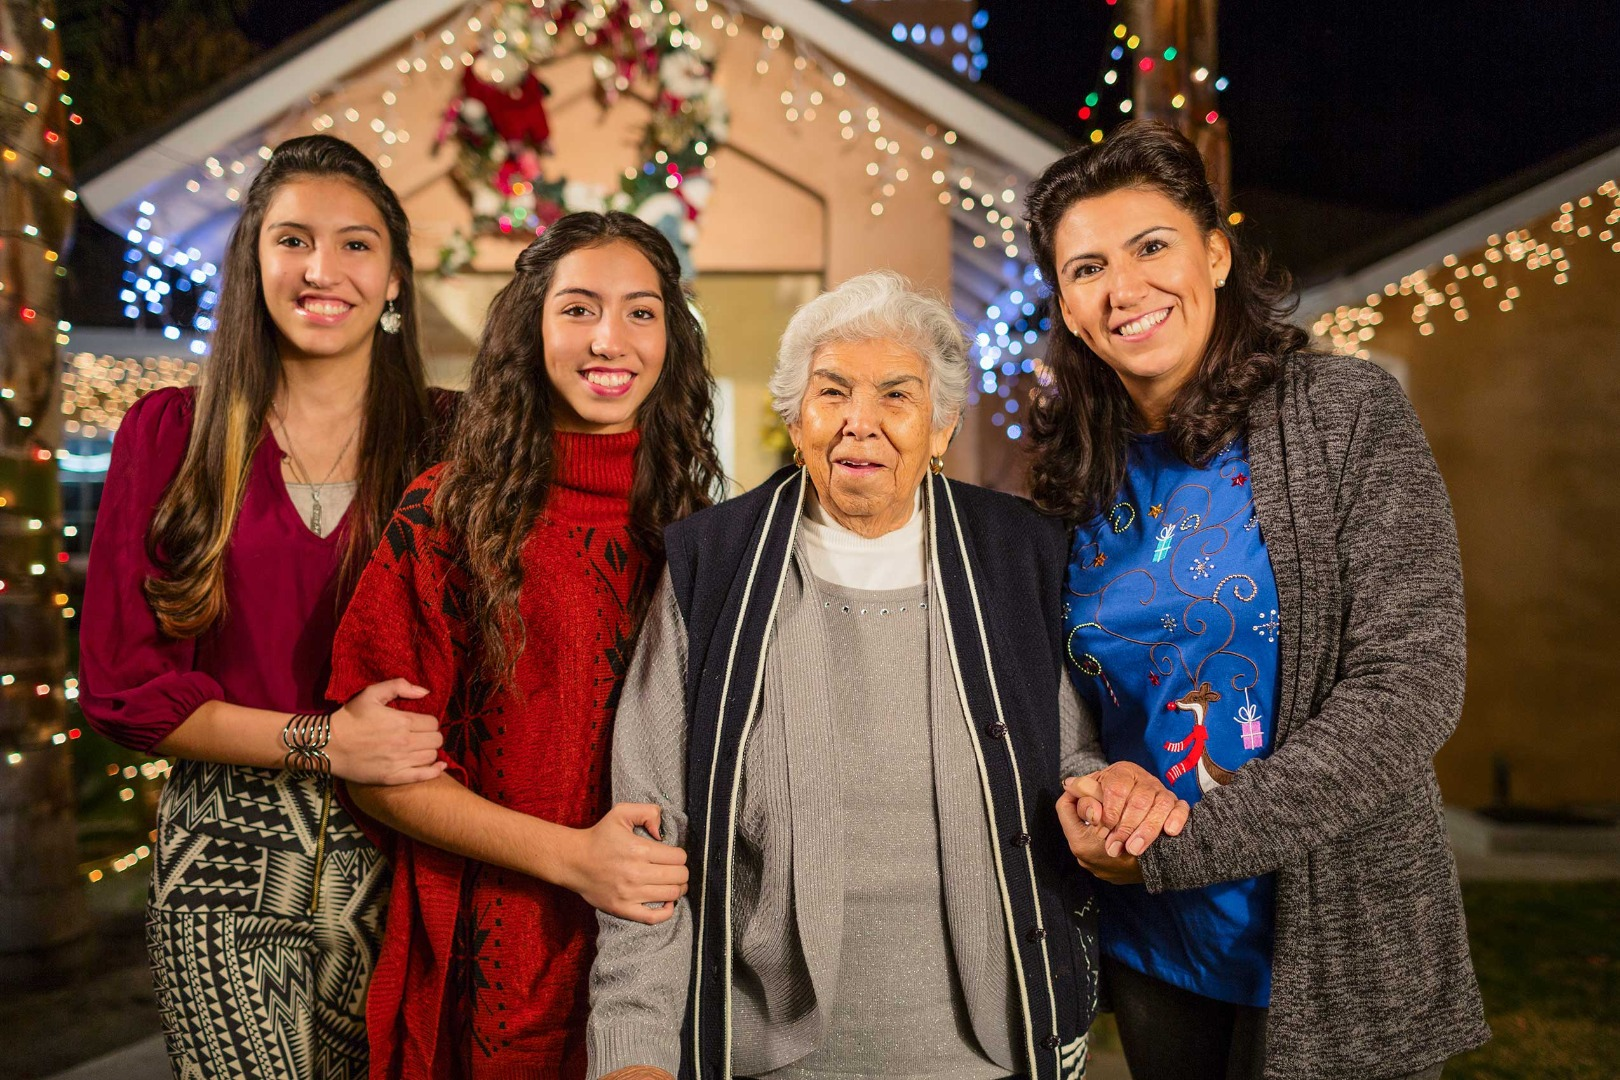 Grandmother with her daughter and granddaughters standing together during the Christmas season.